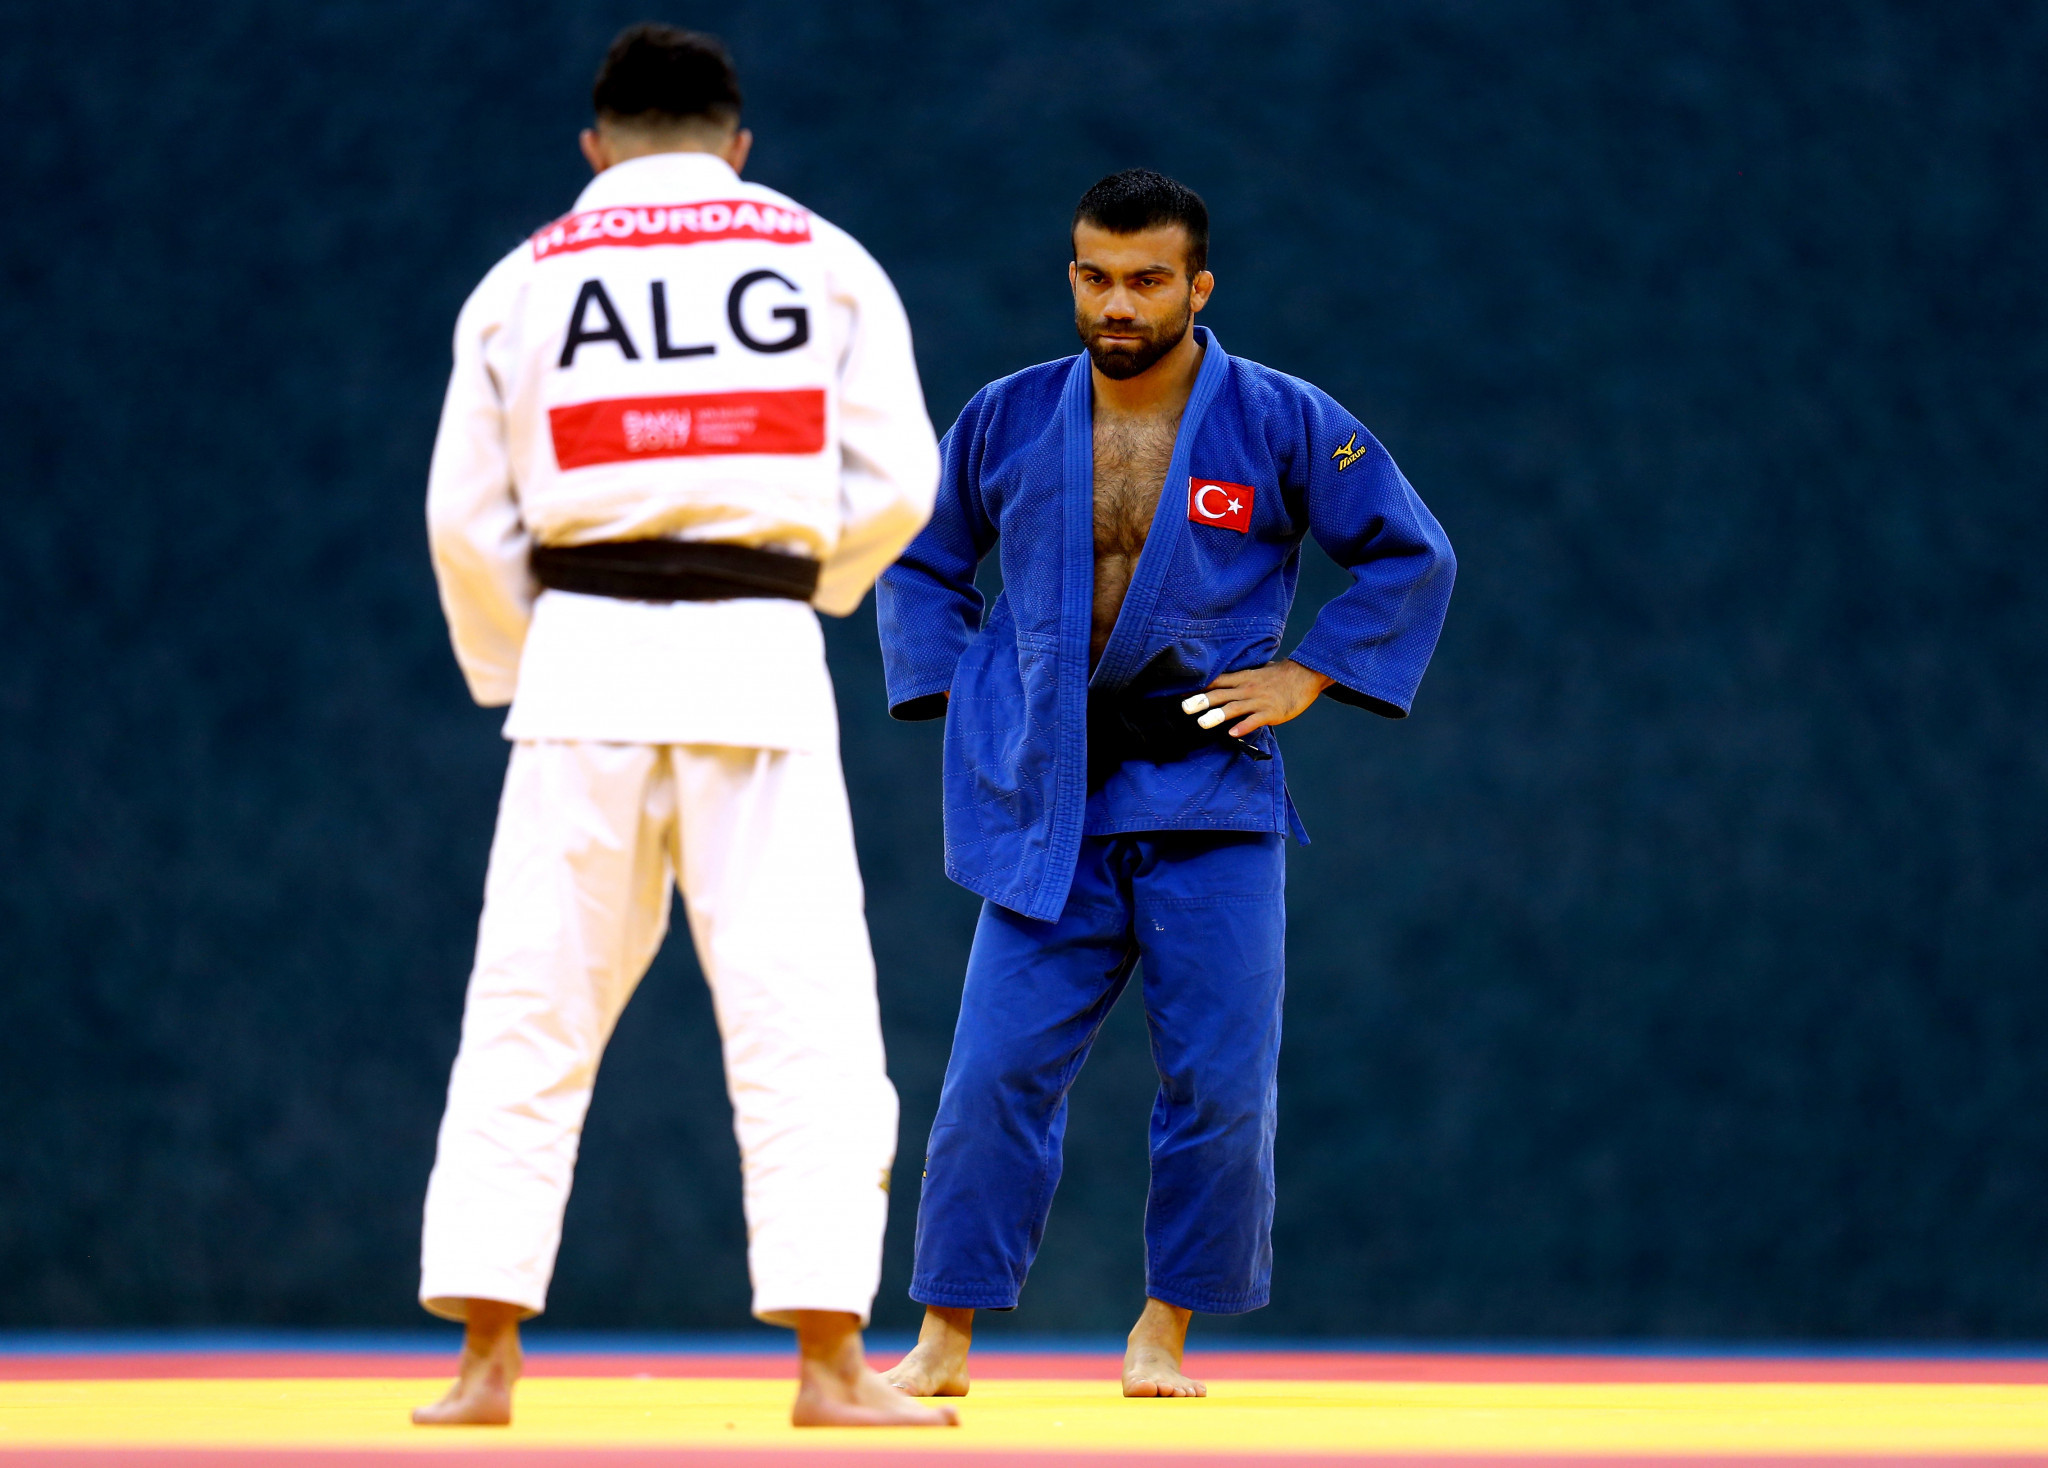 IJF deny claim Algerian athlete withdrew from World Championships to avoid Israel opponent